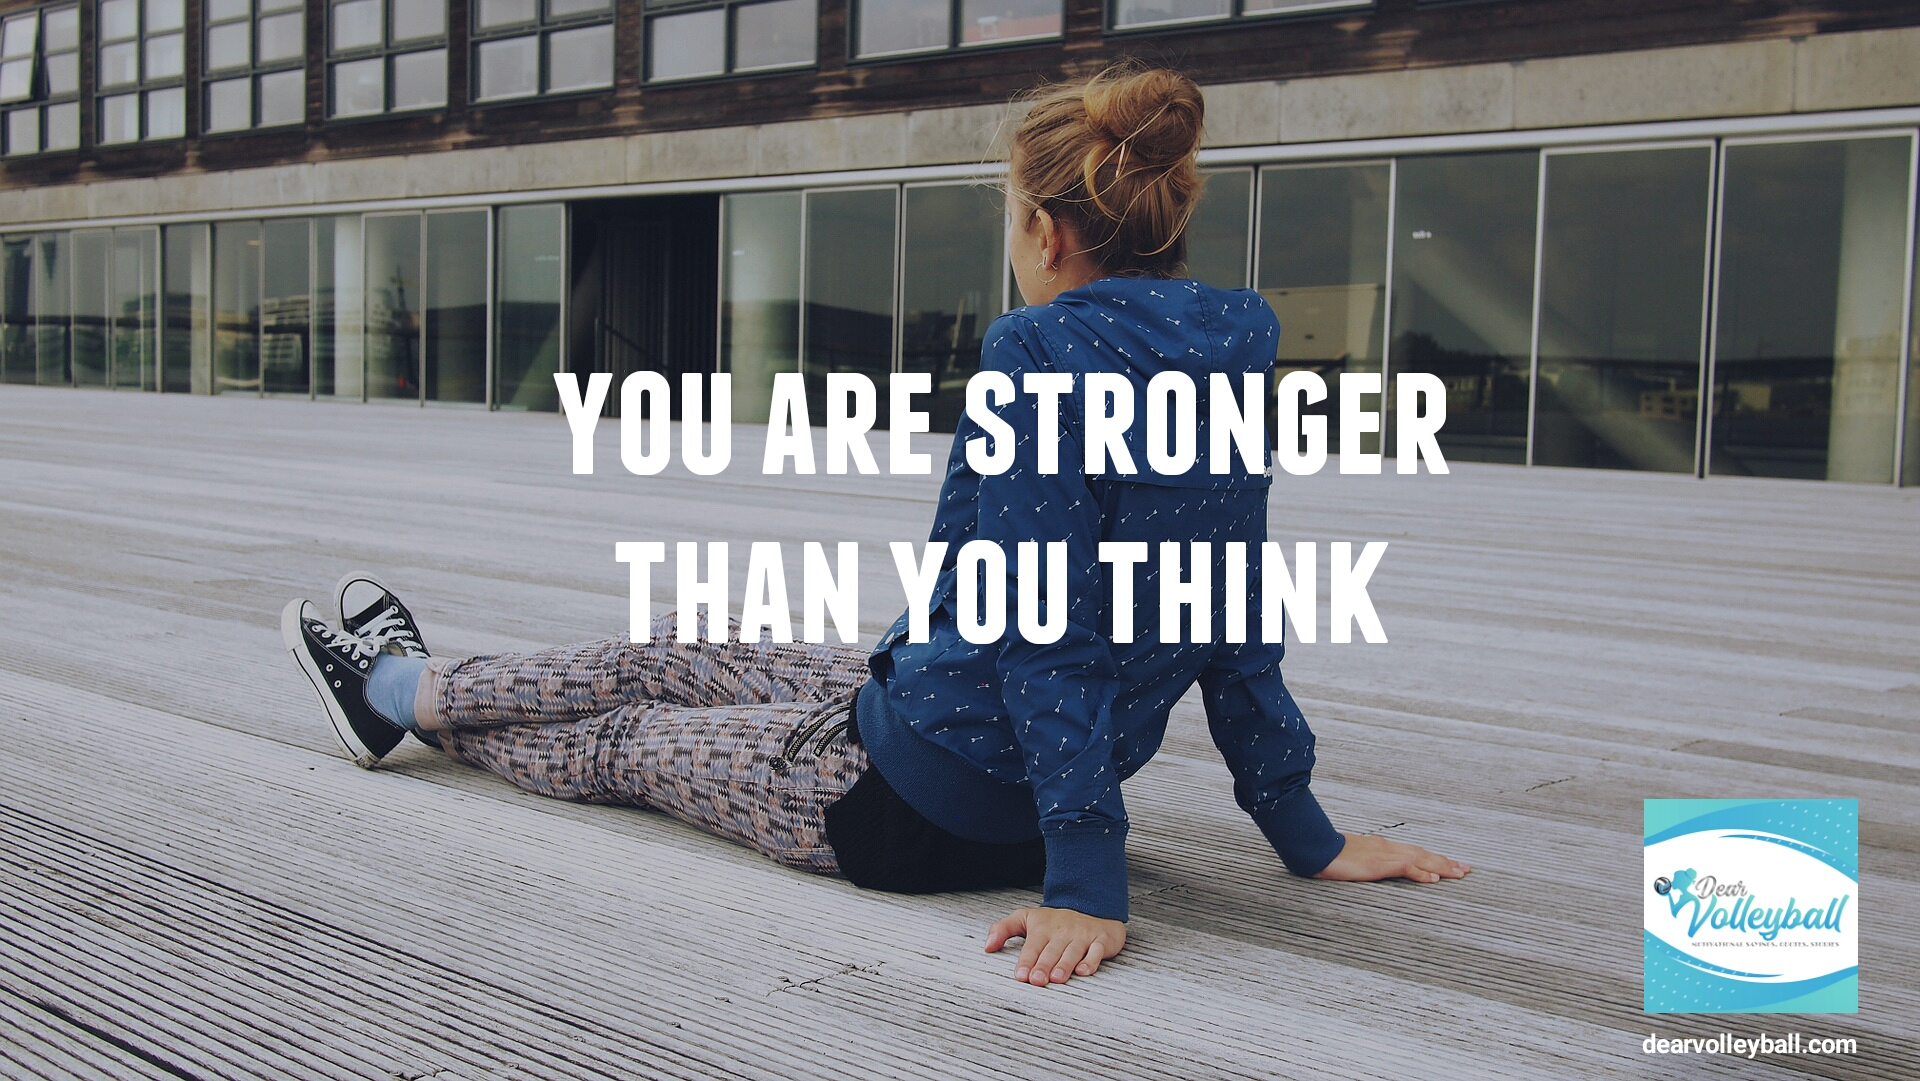 You are stronger than you think and 54 short inspirational quotes on DearVolleyball.com